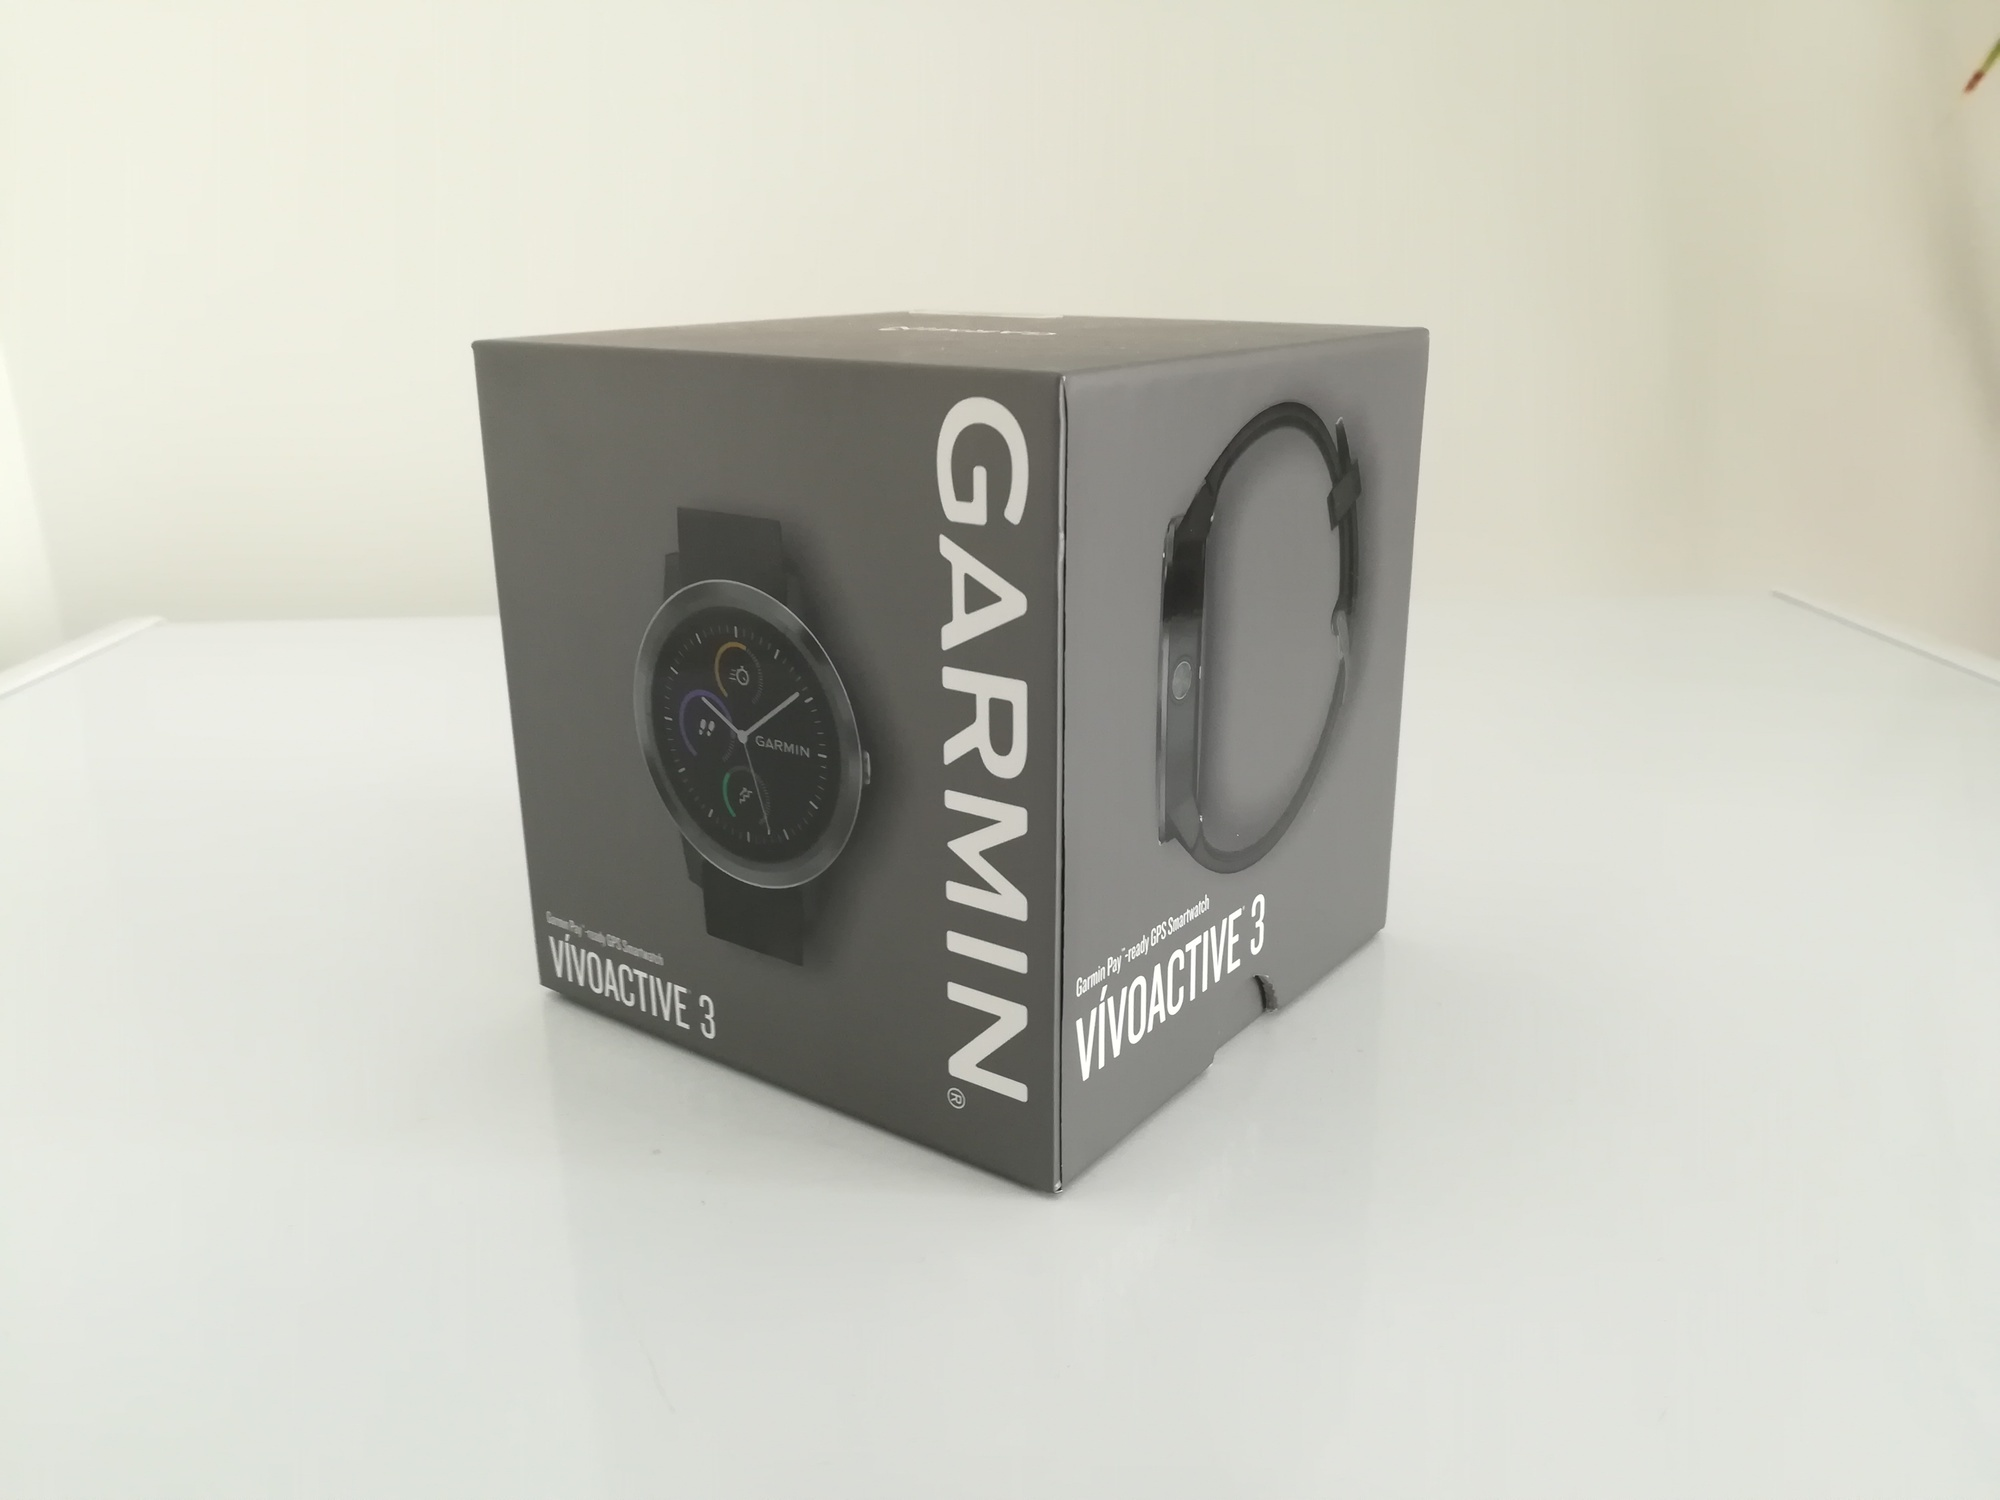 Garmin Vivoactive 3 box